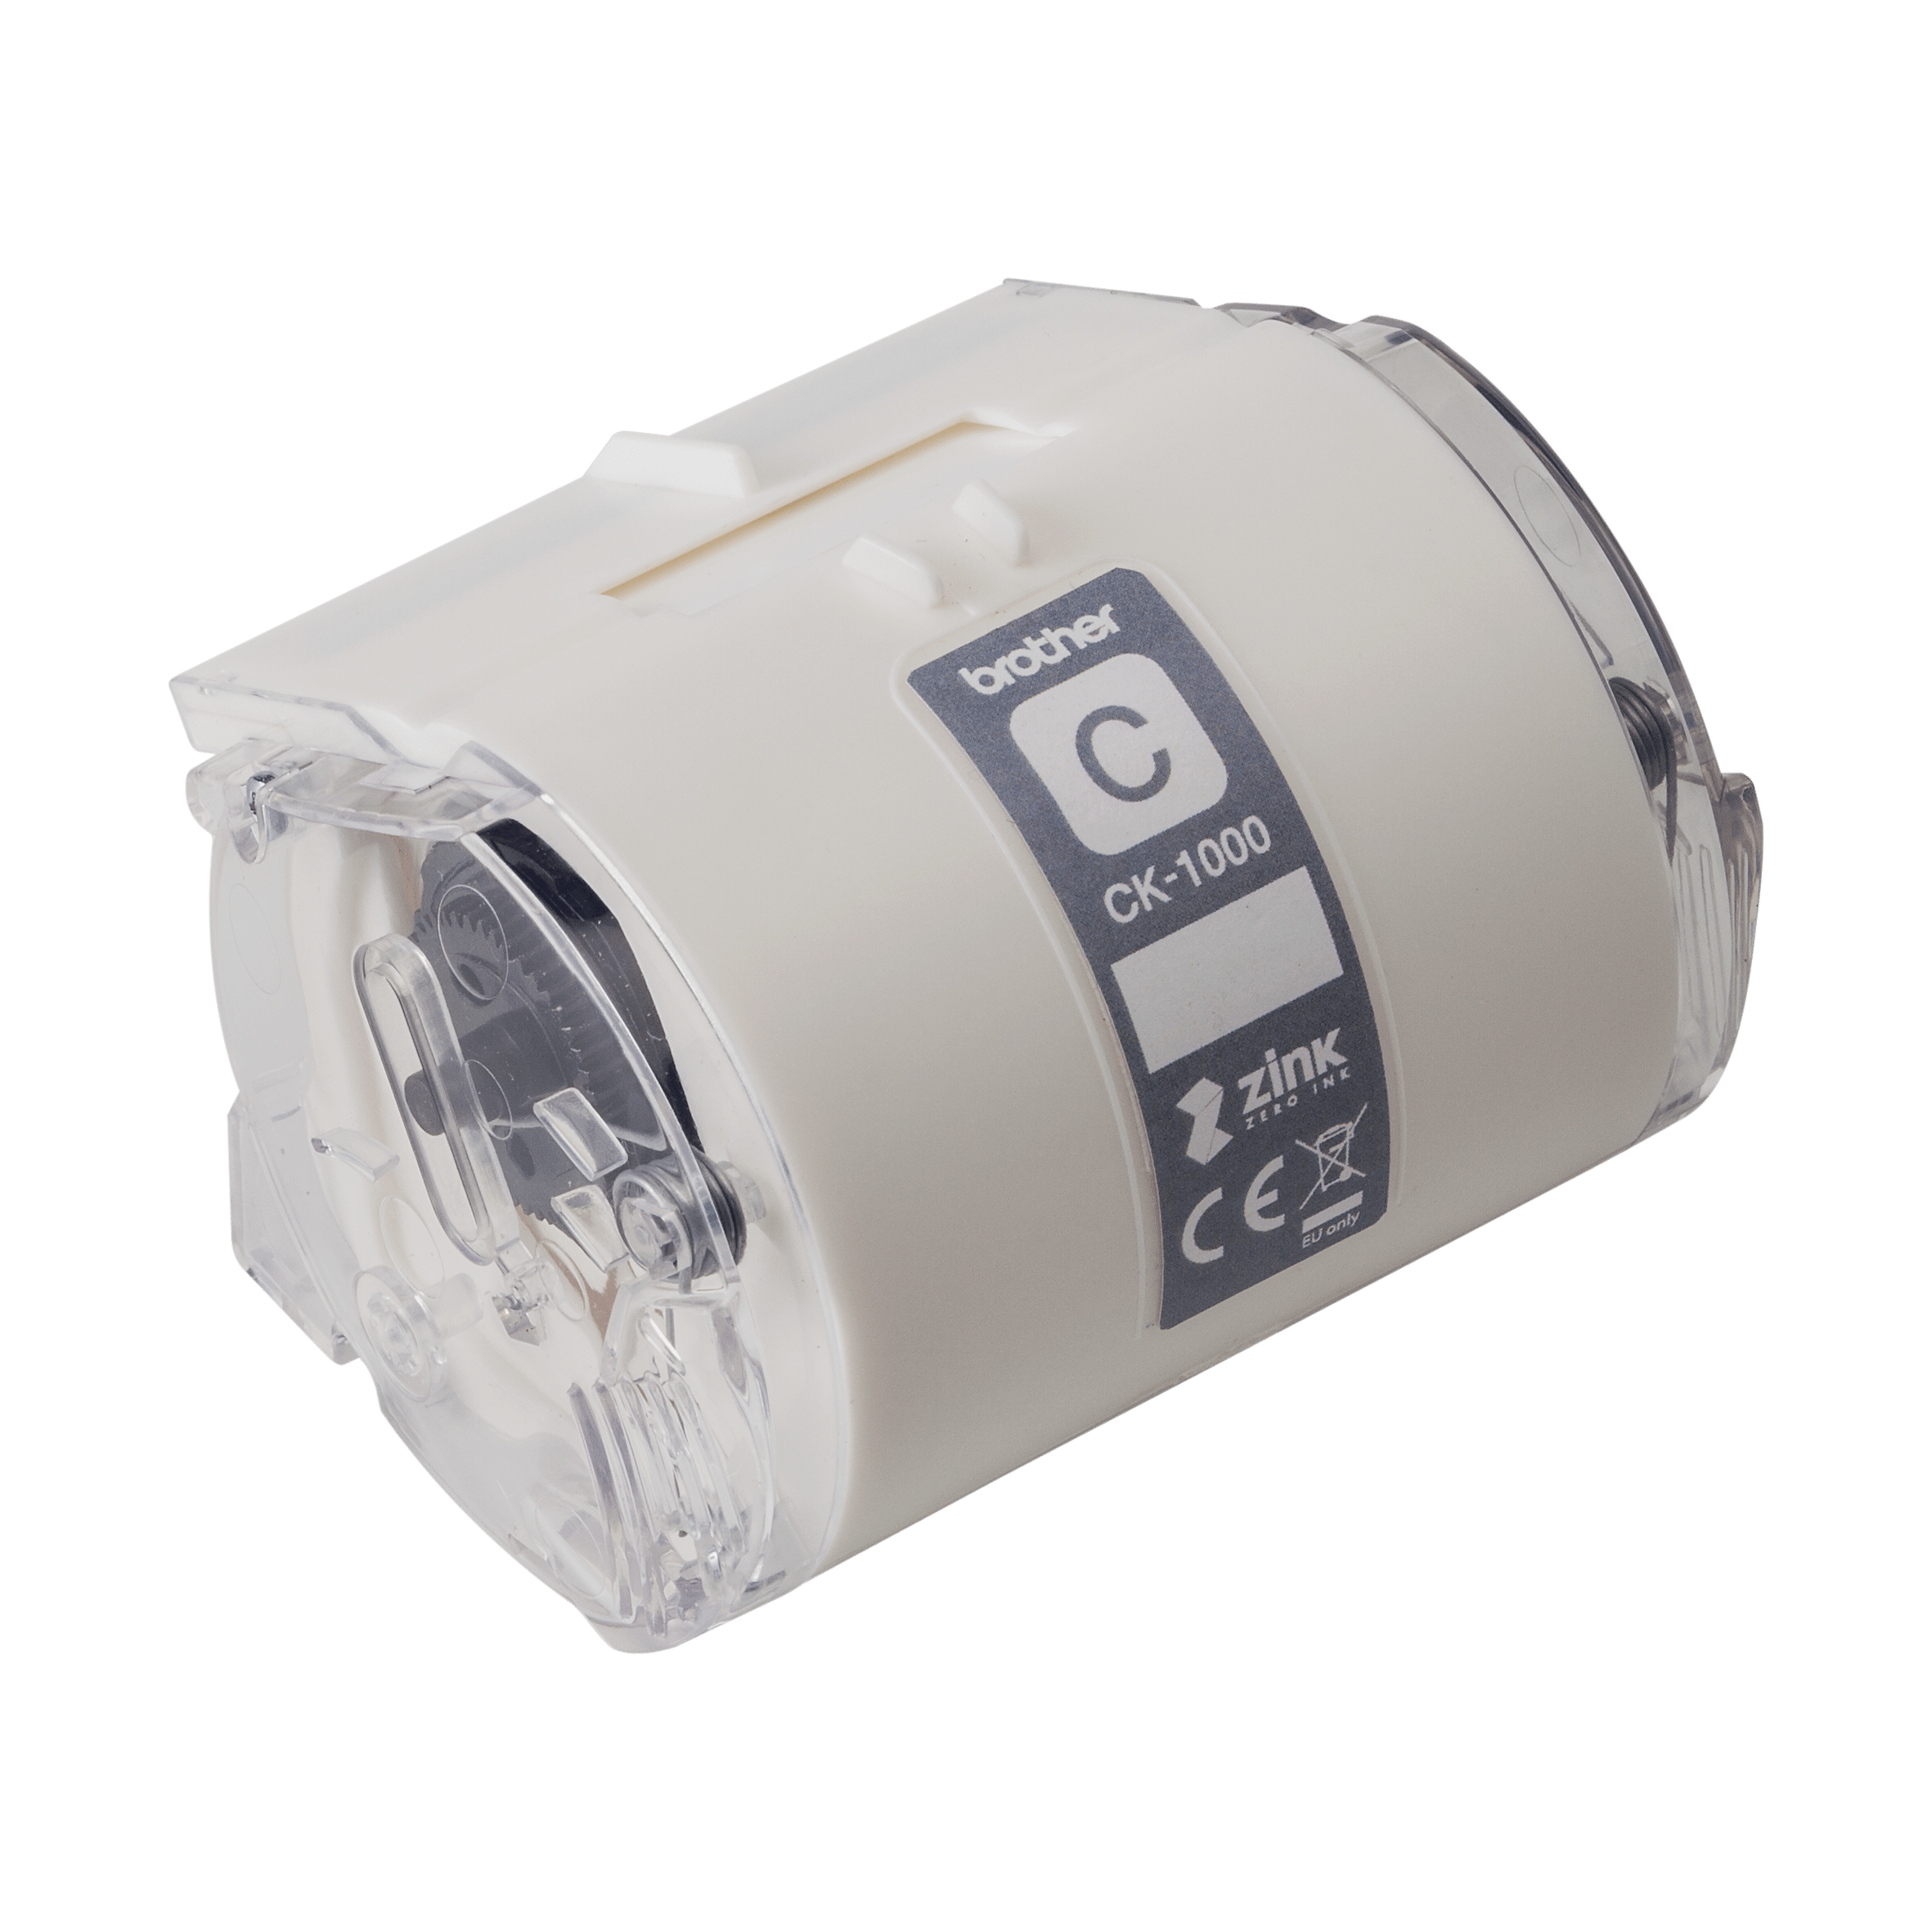 Genuine Brother CK-1000 print head cleaning roll, 50mm wide